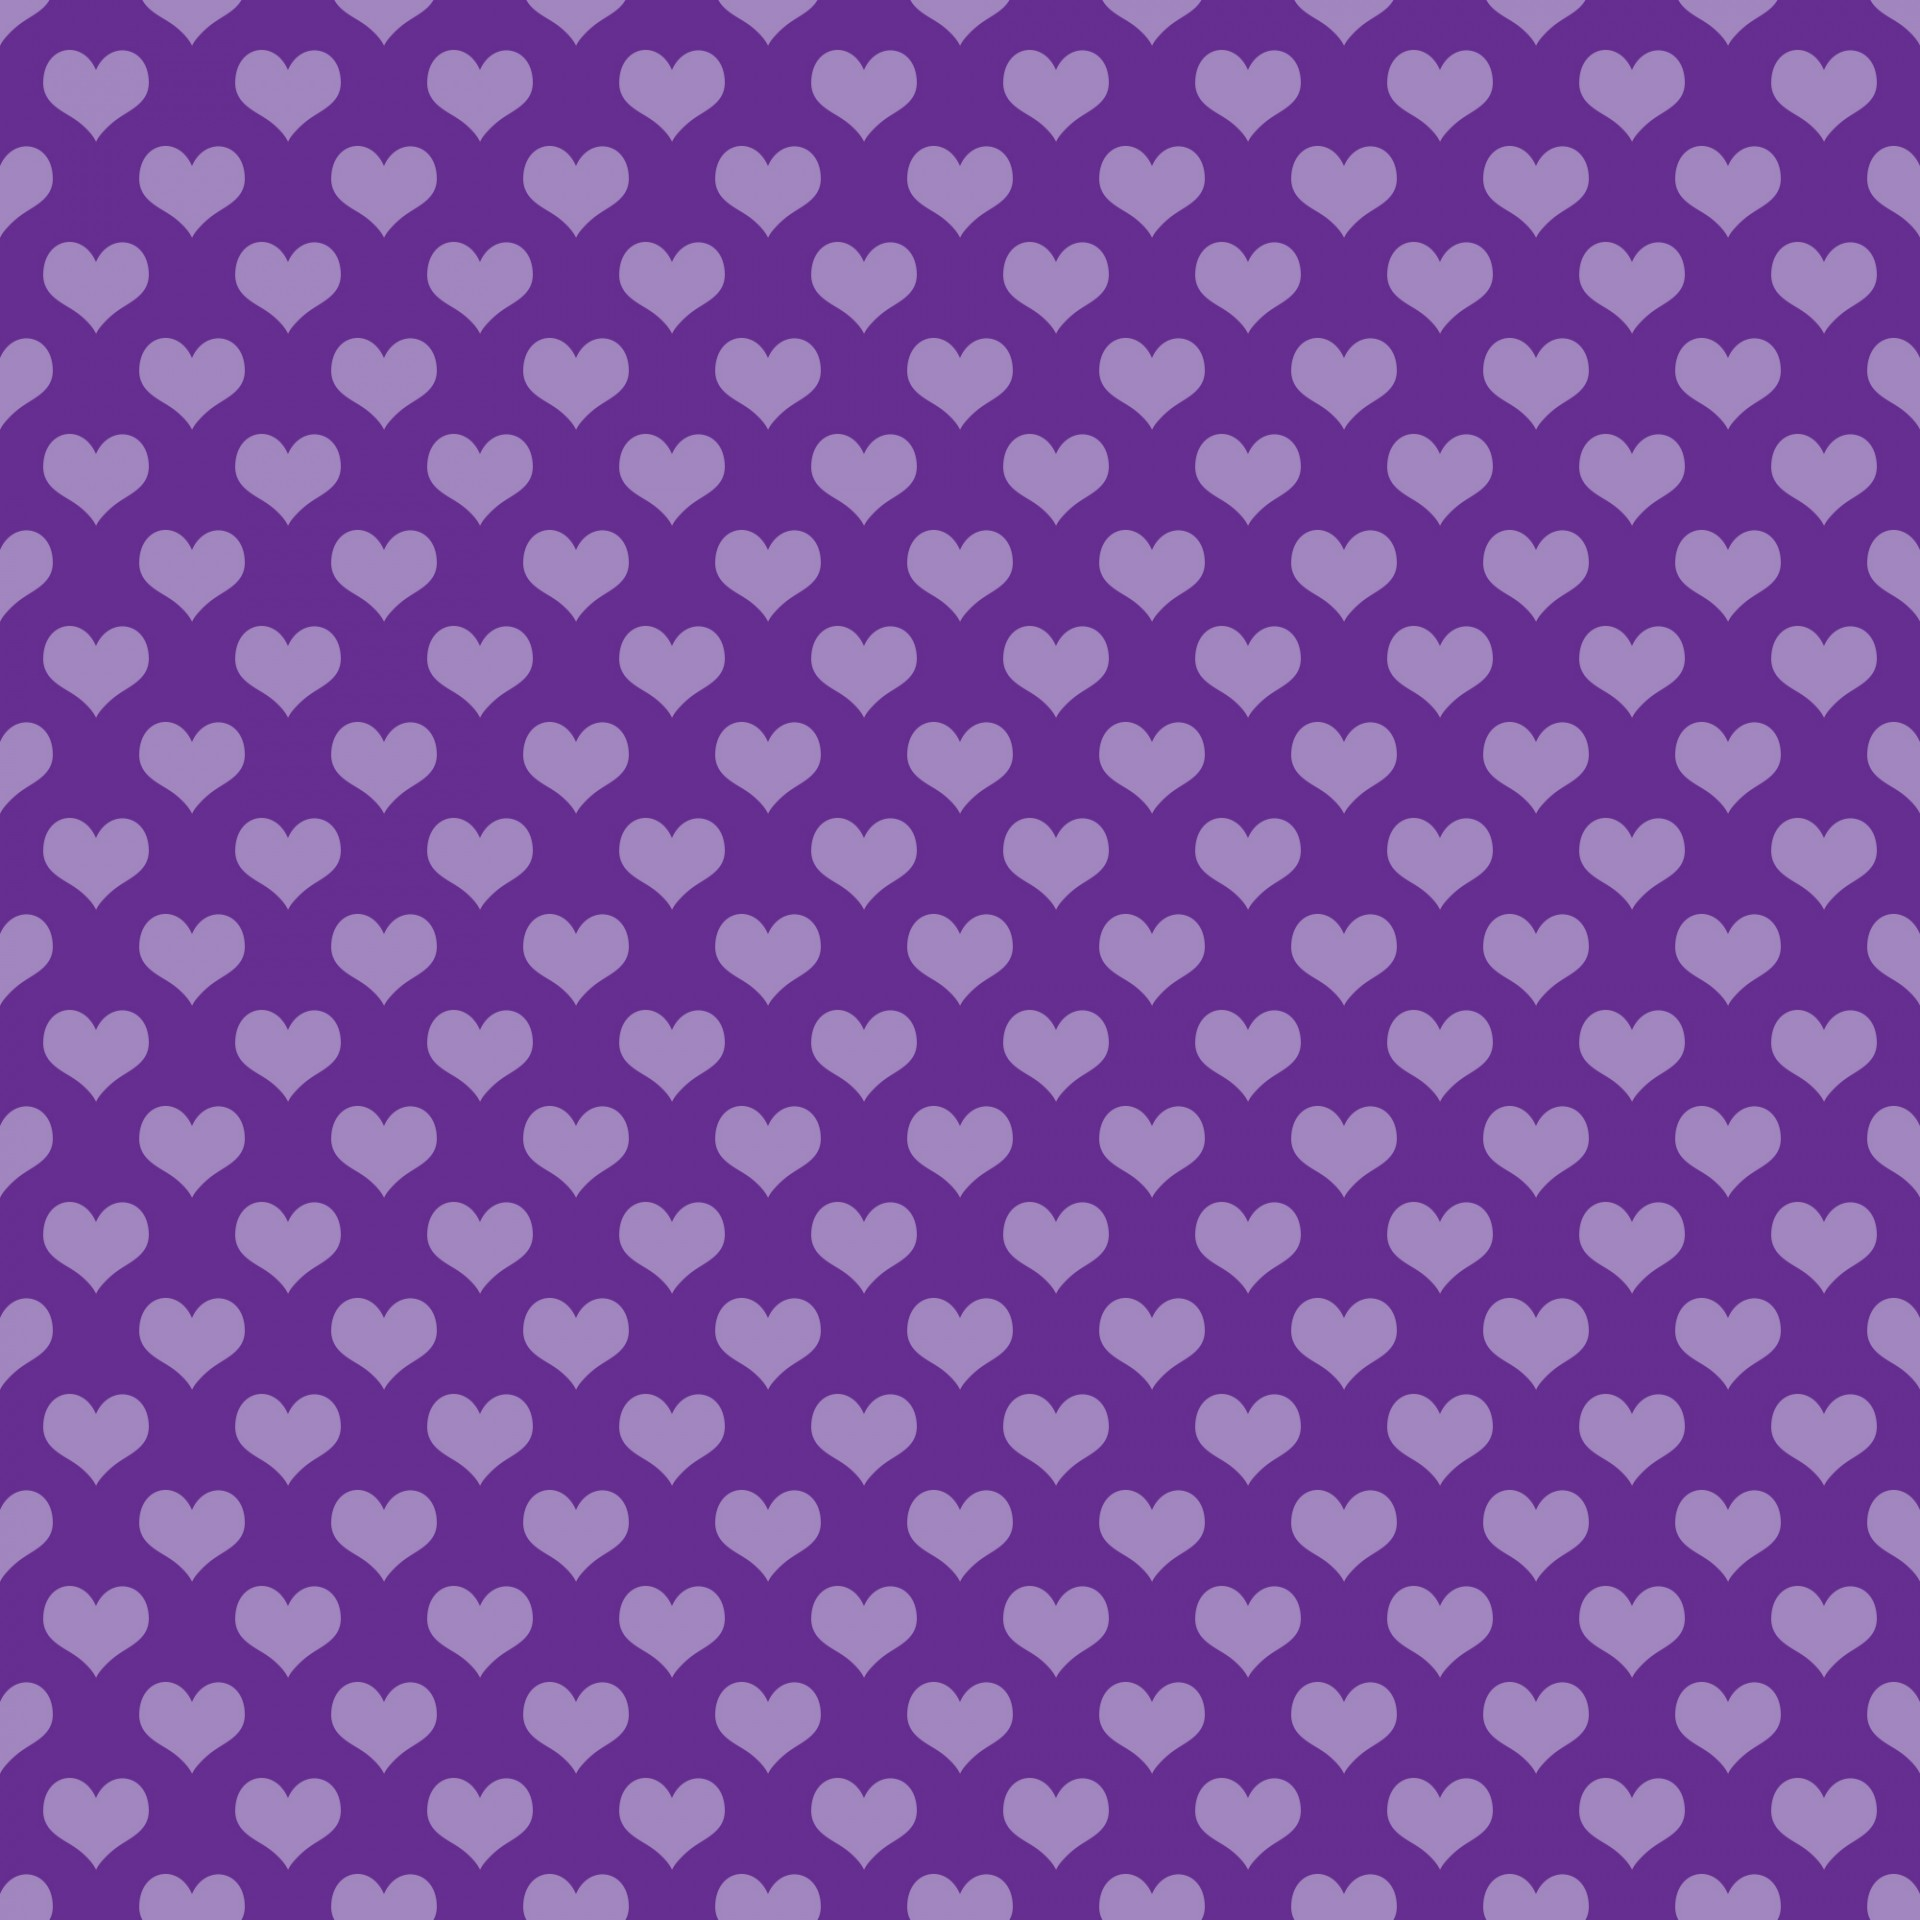 1920x1920 Hearts Background Wallpaper